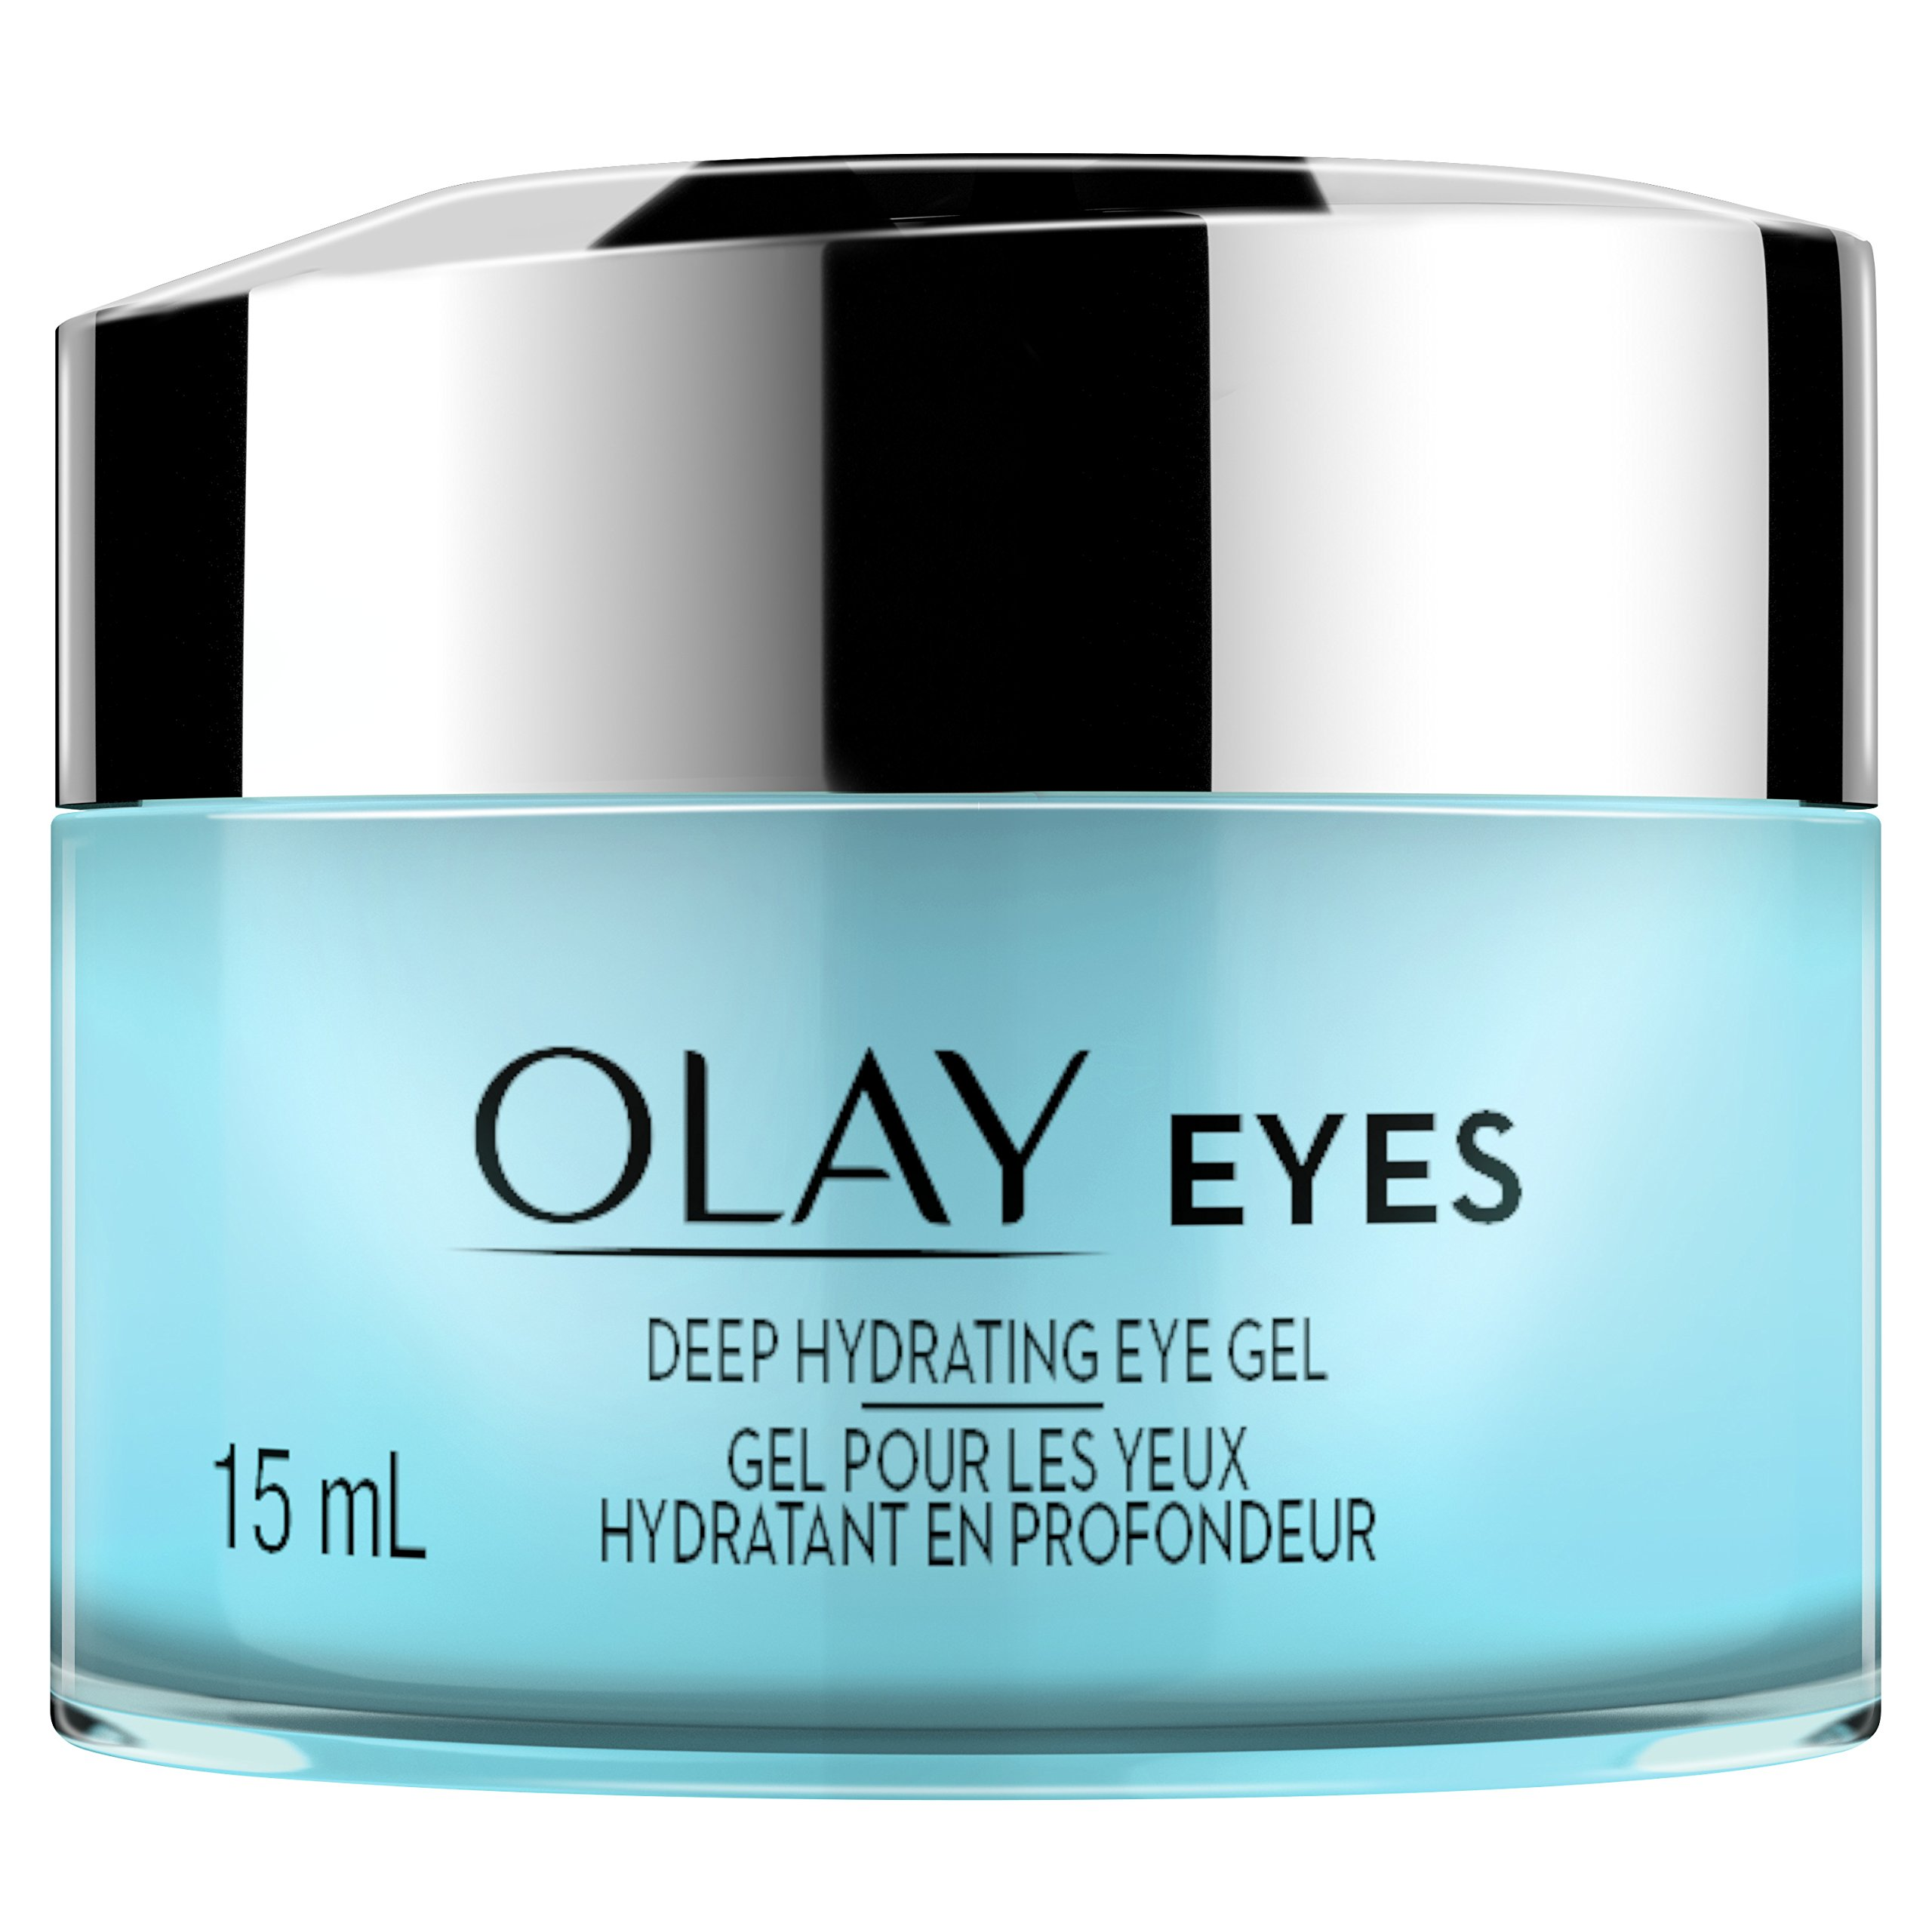 Eye Cream by Olay, Deep Hydrating Eye Gel with Hyaluronic Acid, 0.5 fl oz